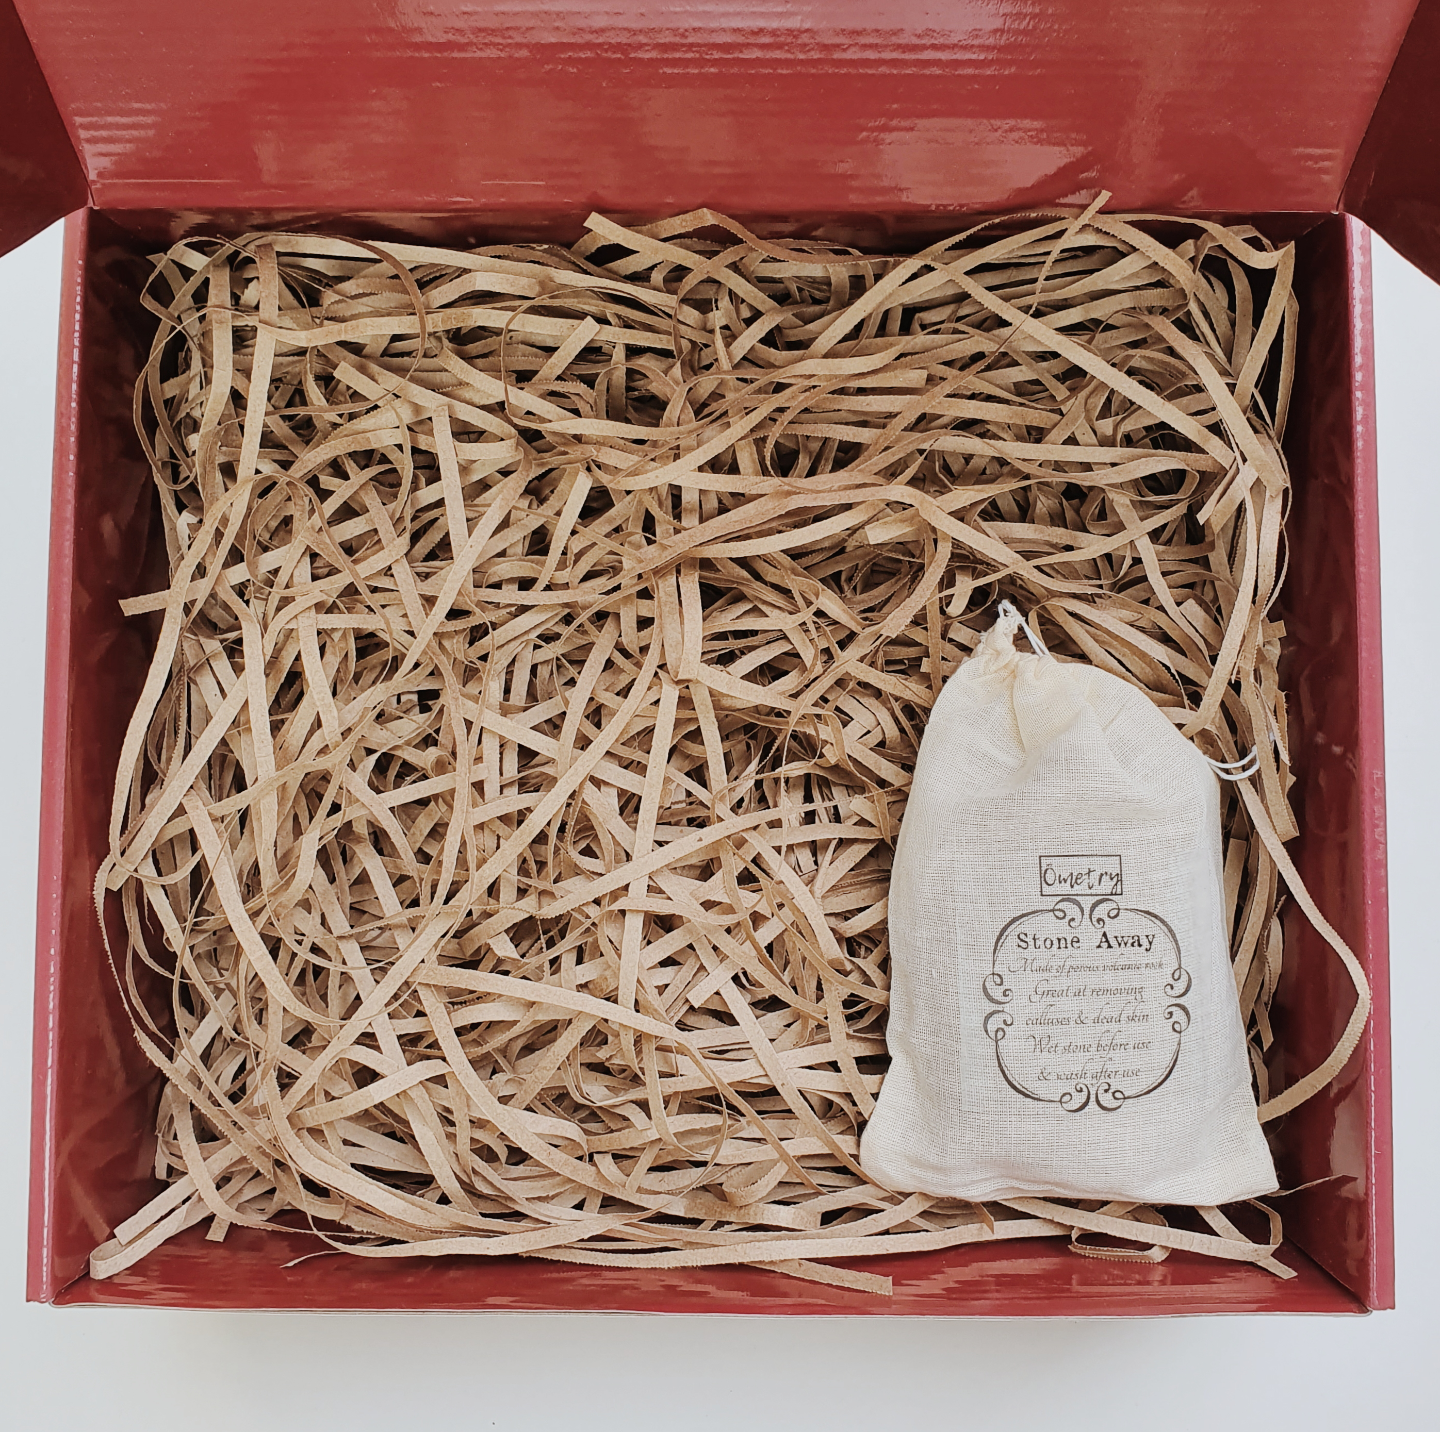 Red gift box filled with brown shredded paper. On the bottom right is a light brown drawstring pouch with the words Ometry printed above and Stone away printed below.